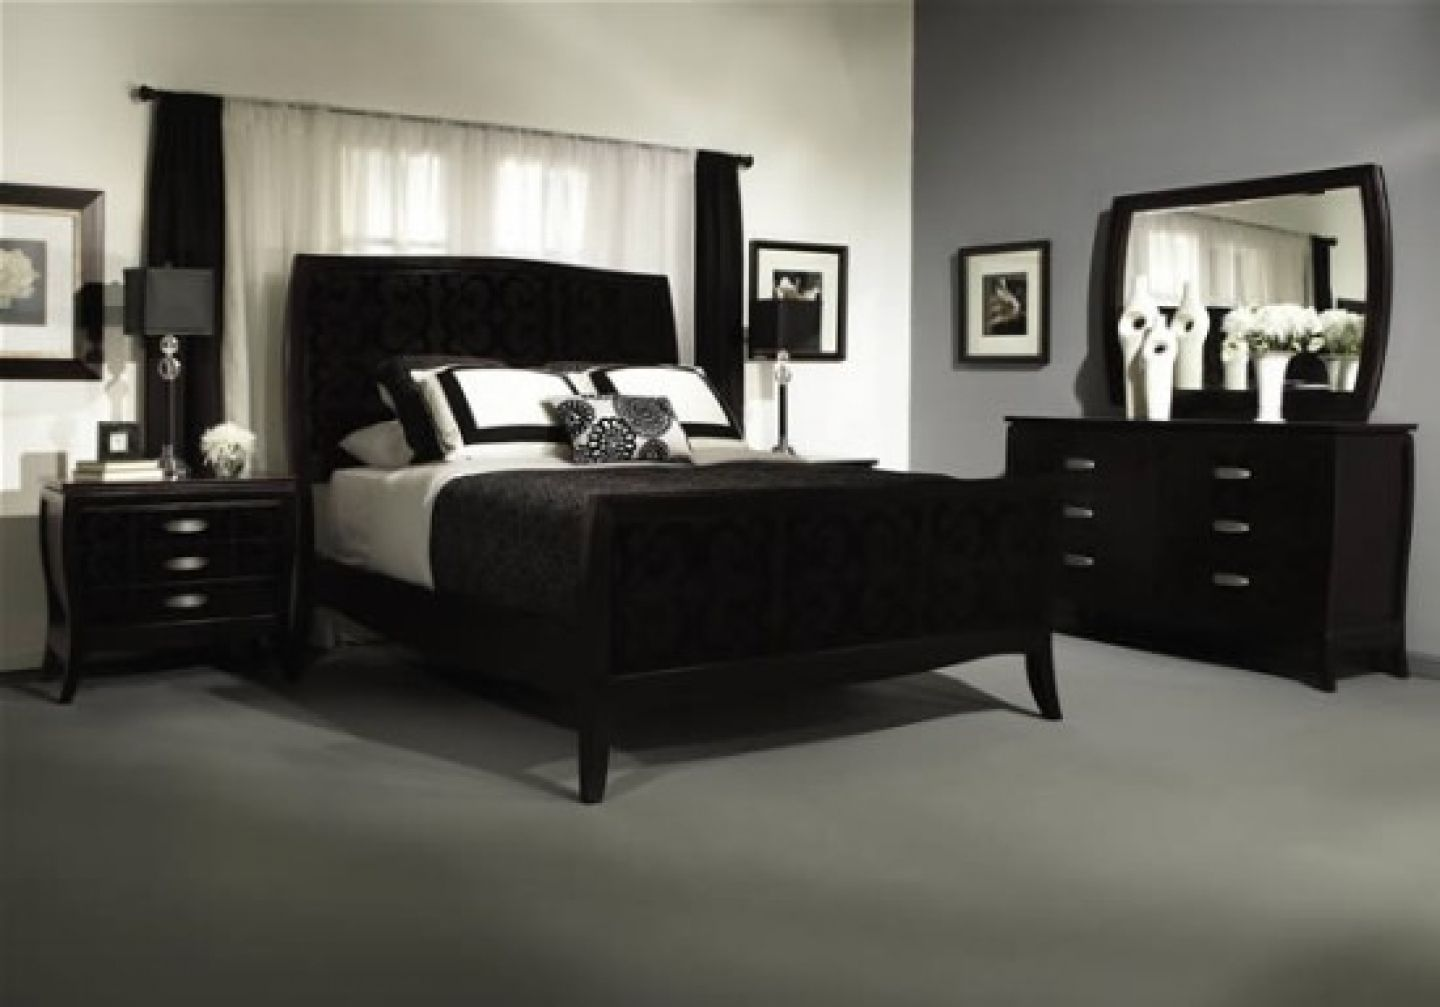 Best Accent Wall Ideas Black And White Bedroom With Gray 400 x 300